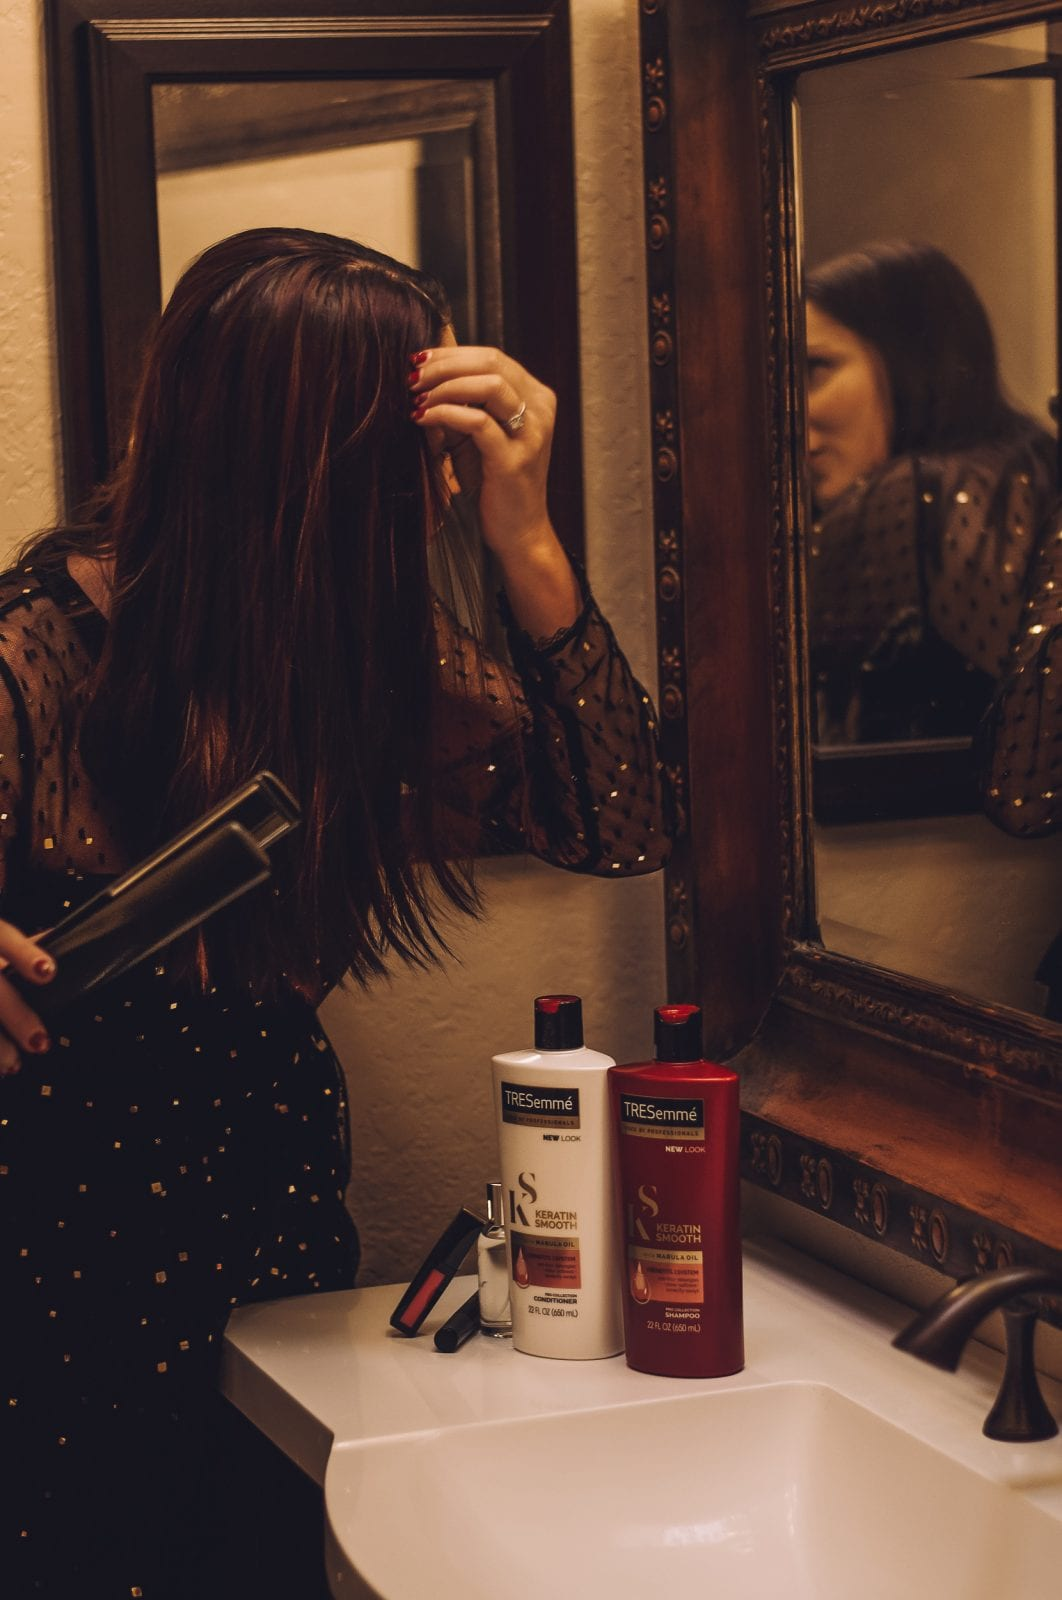 This is an in mirror shot of me straightening my hair in the mirror, while wearing a glitzy glam black dress for a night out.